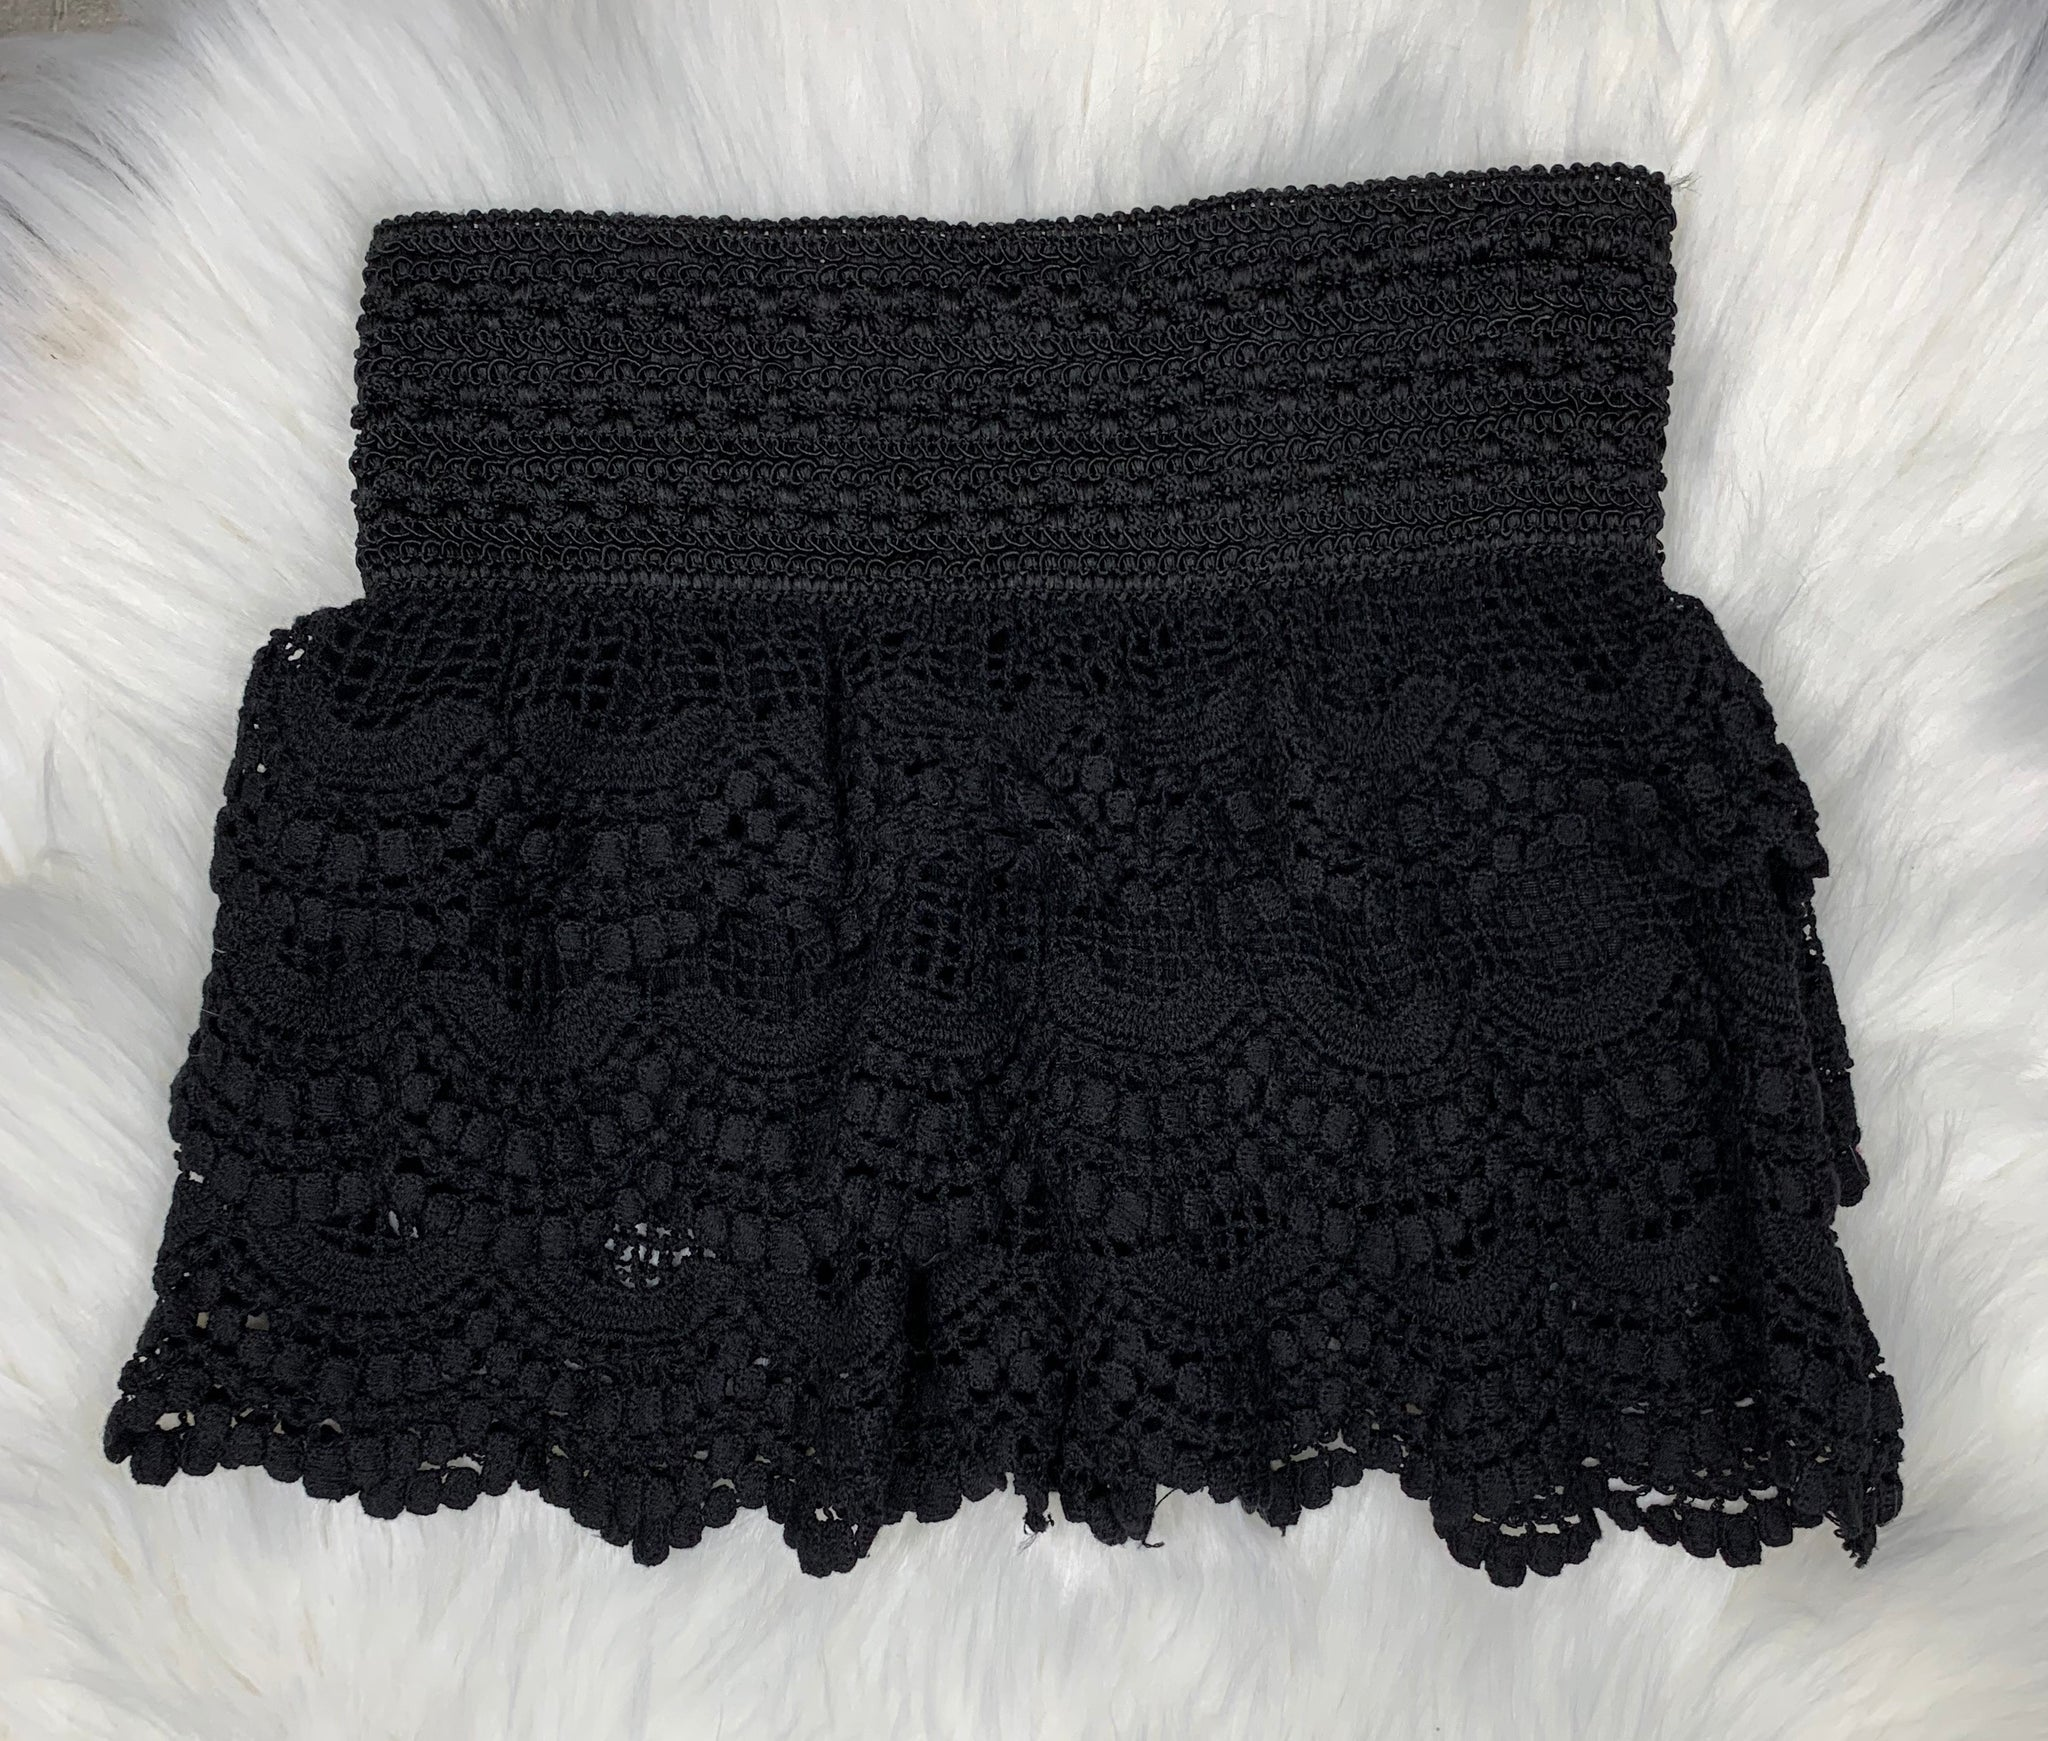 GIRLS Lace Shorts: Black